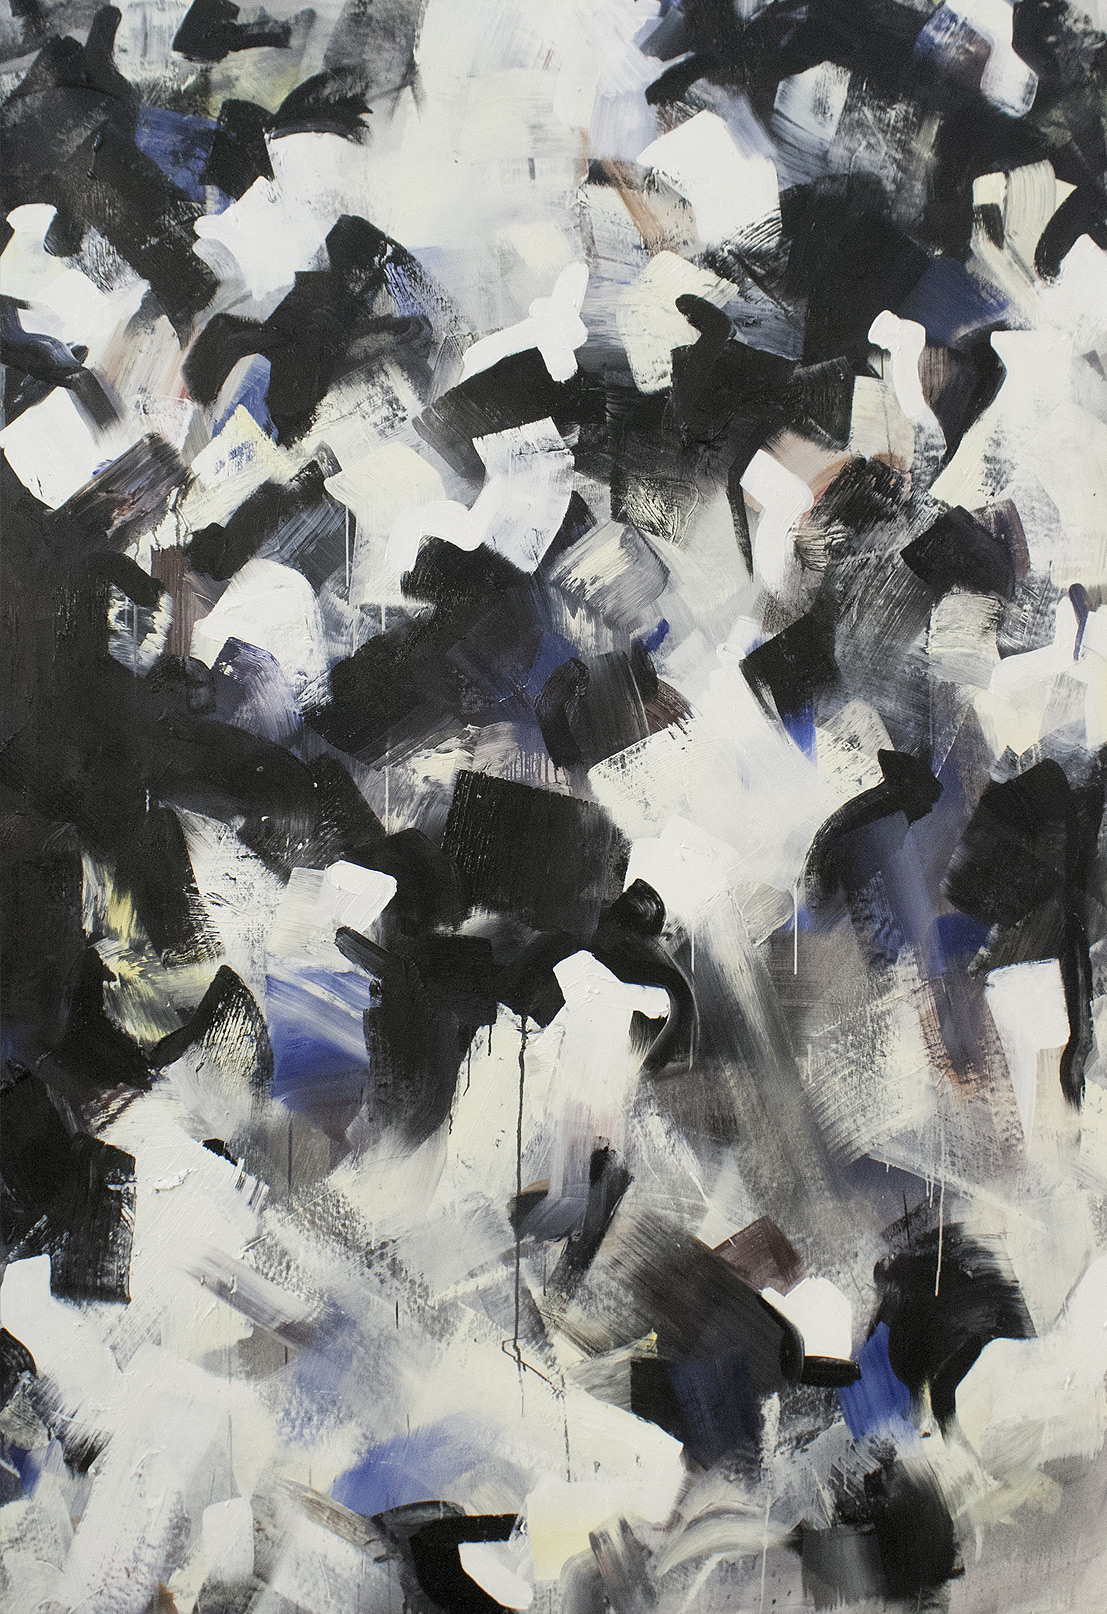 Brut #4 Oil on Canvas • 145 x 255 cm • 2014